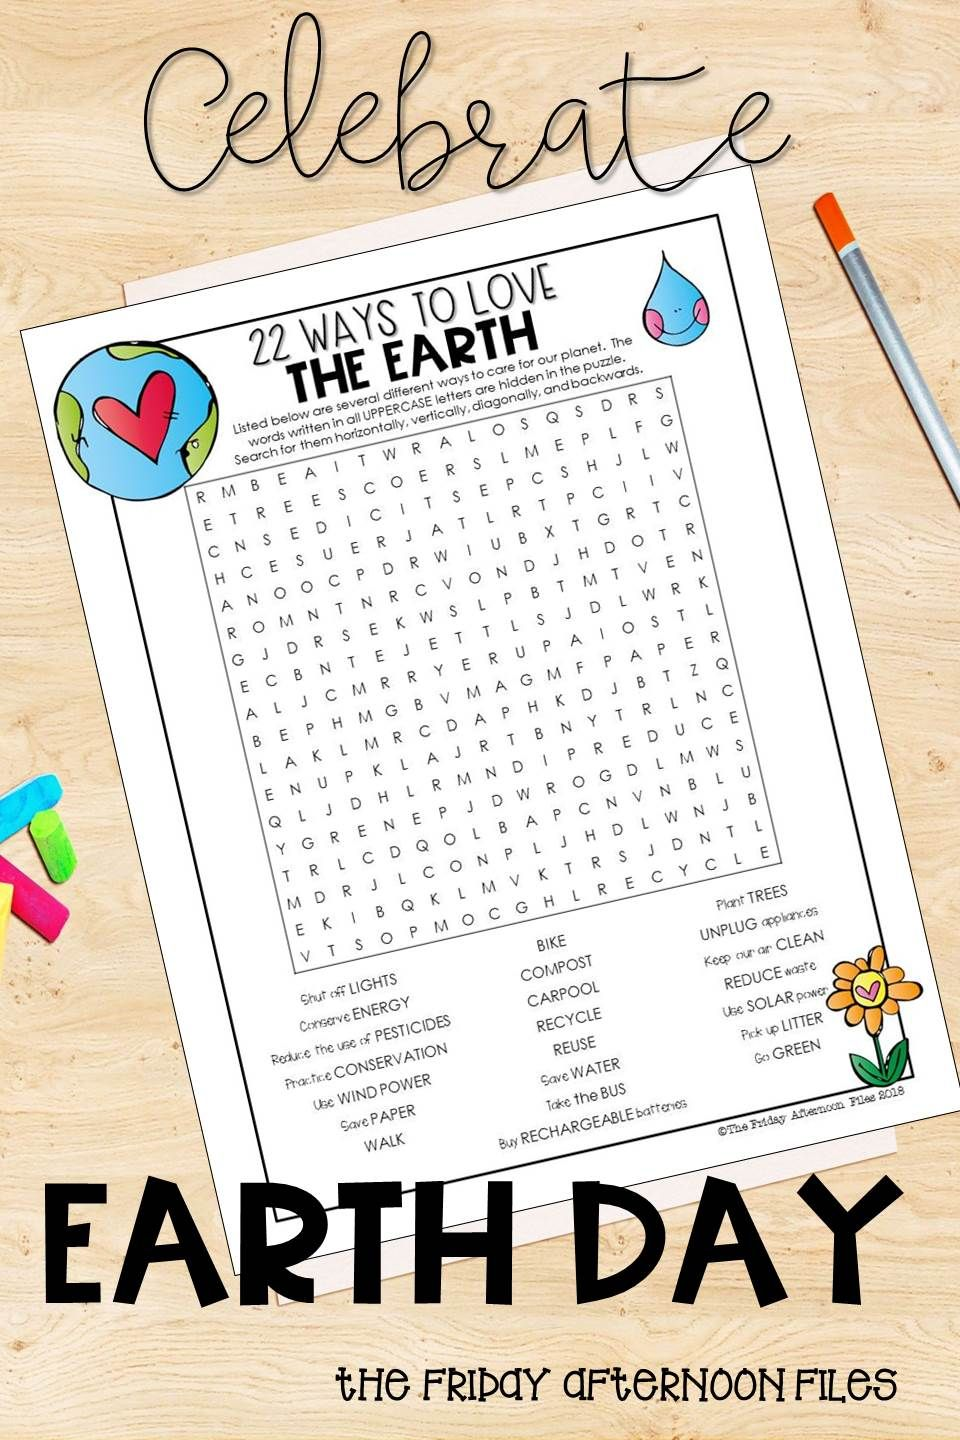 Earth Day Word Search 22 Ways to Love the Earth Earth